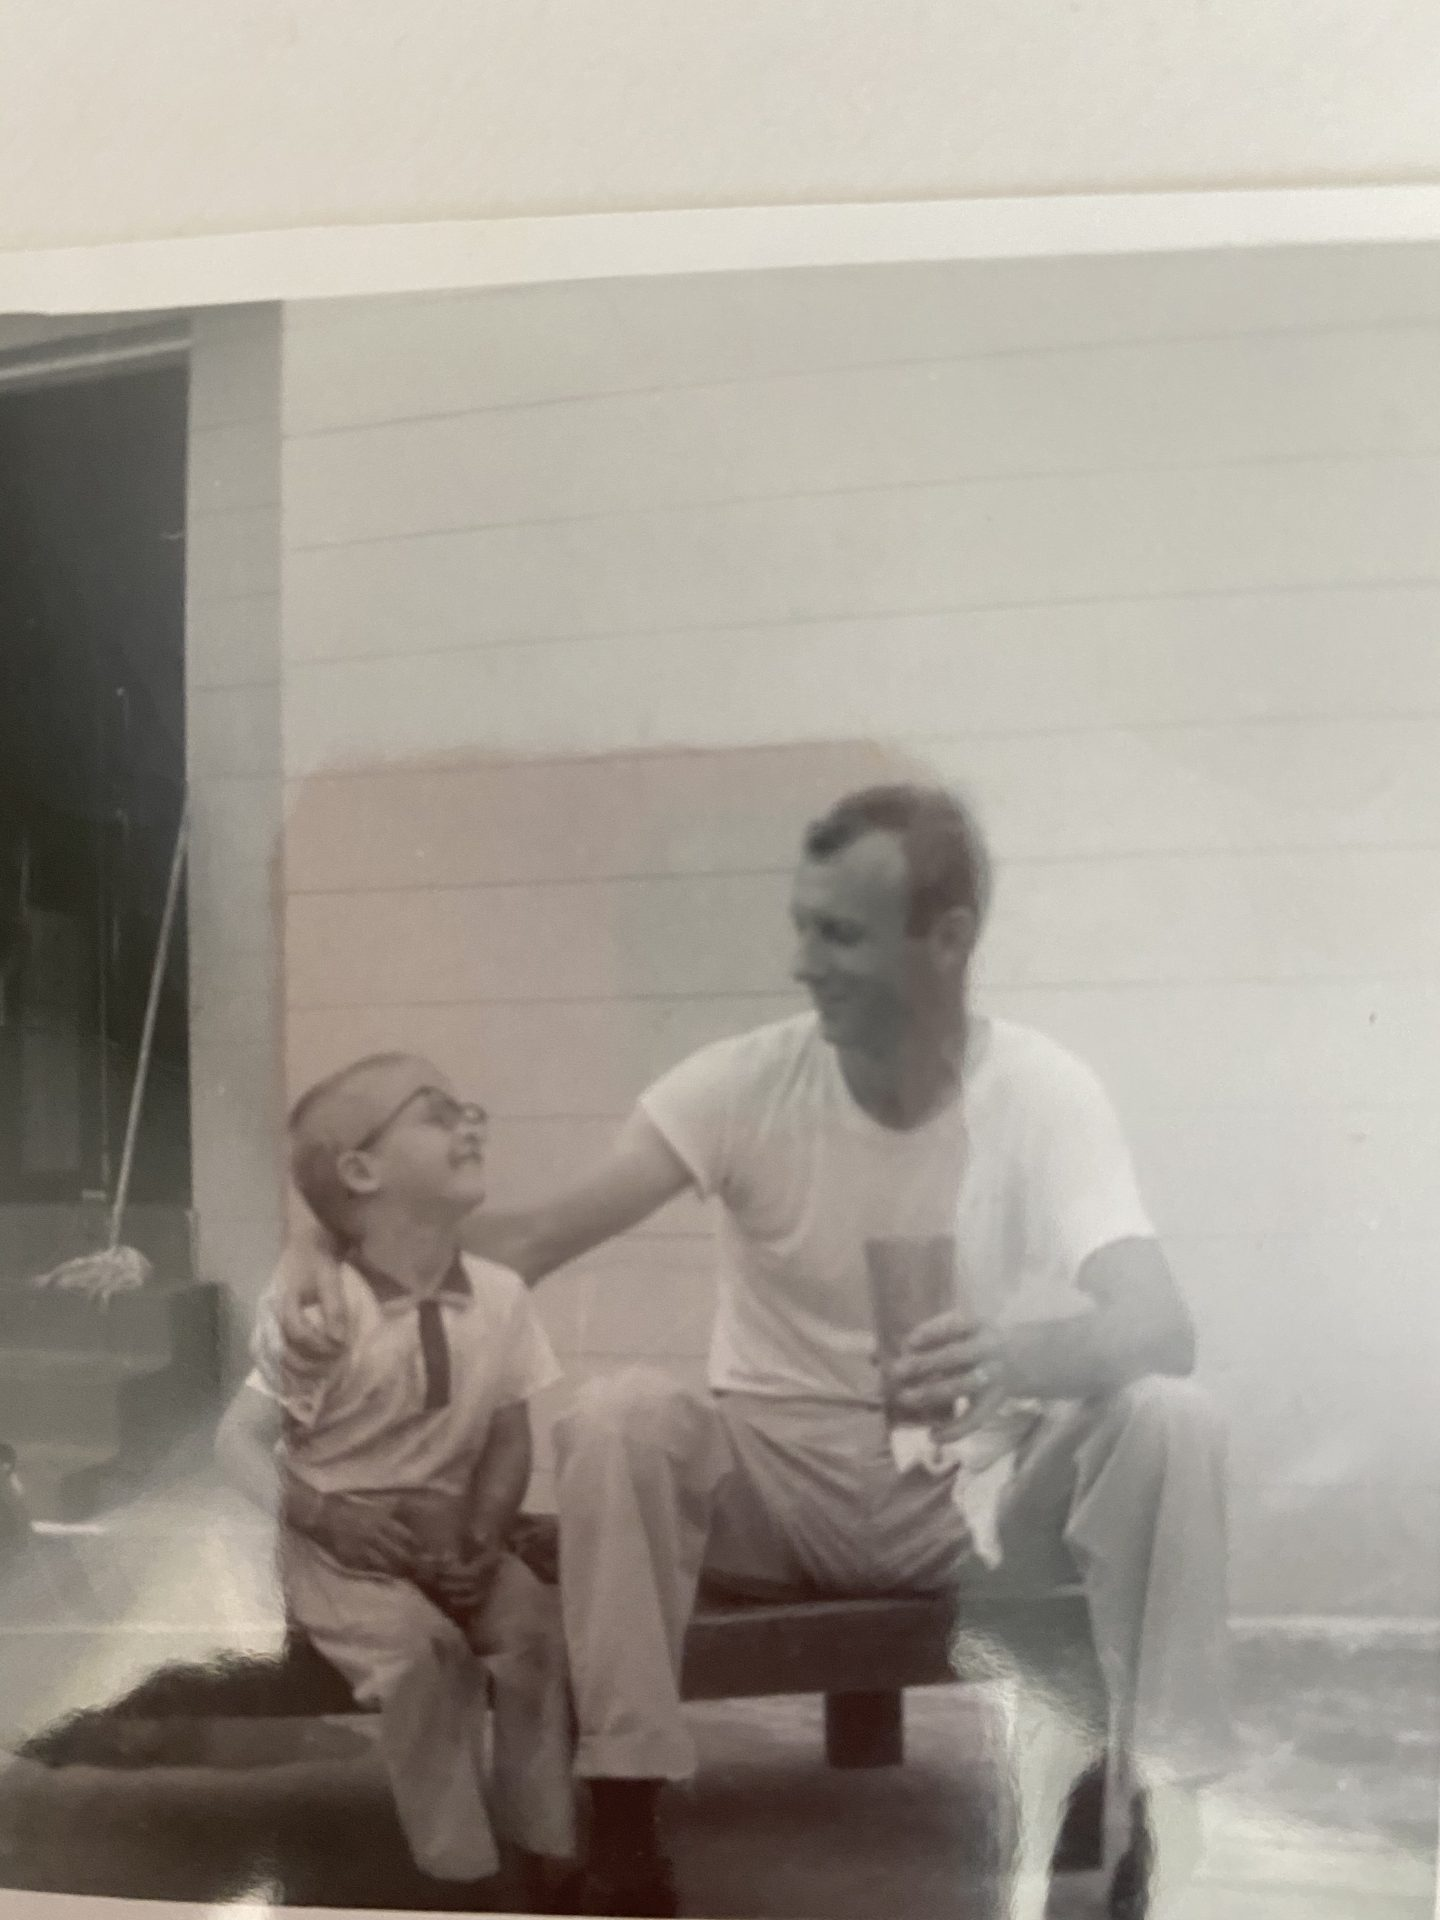 Dad and Mark it started young building and bonding